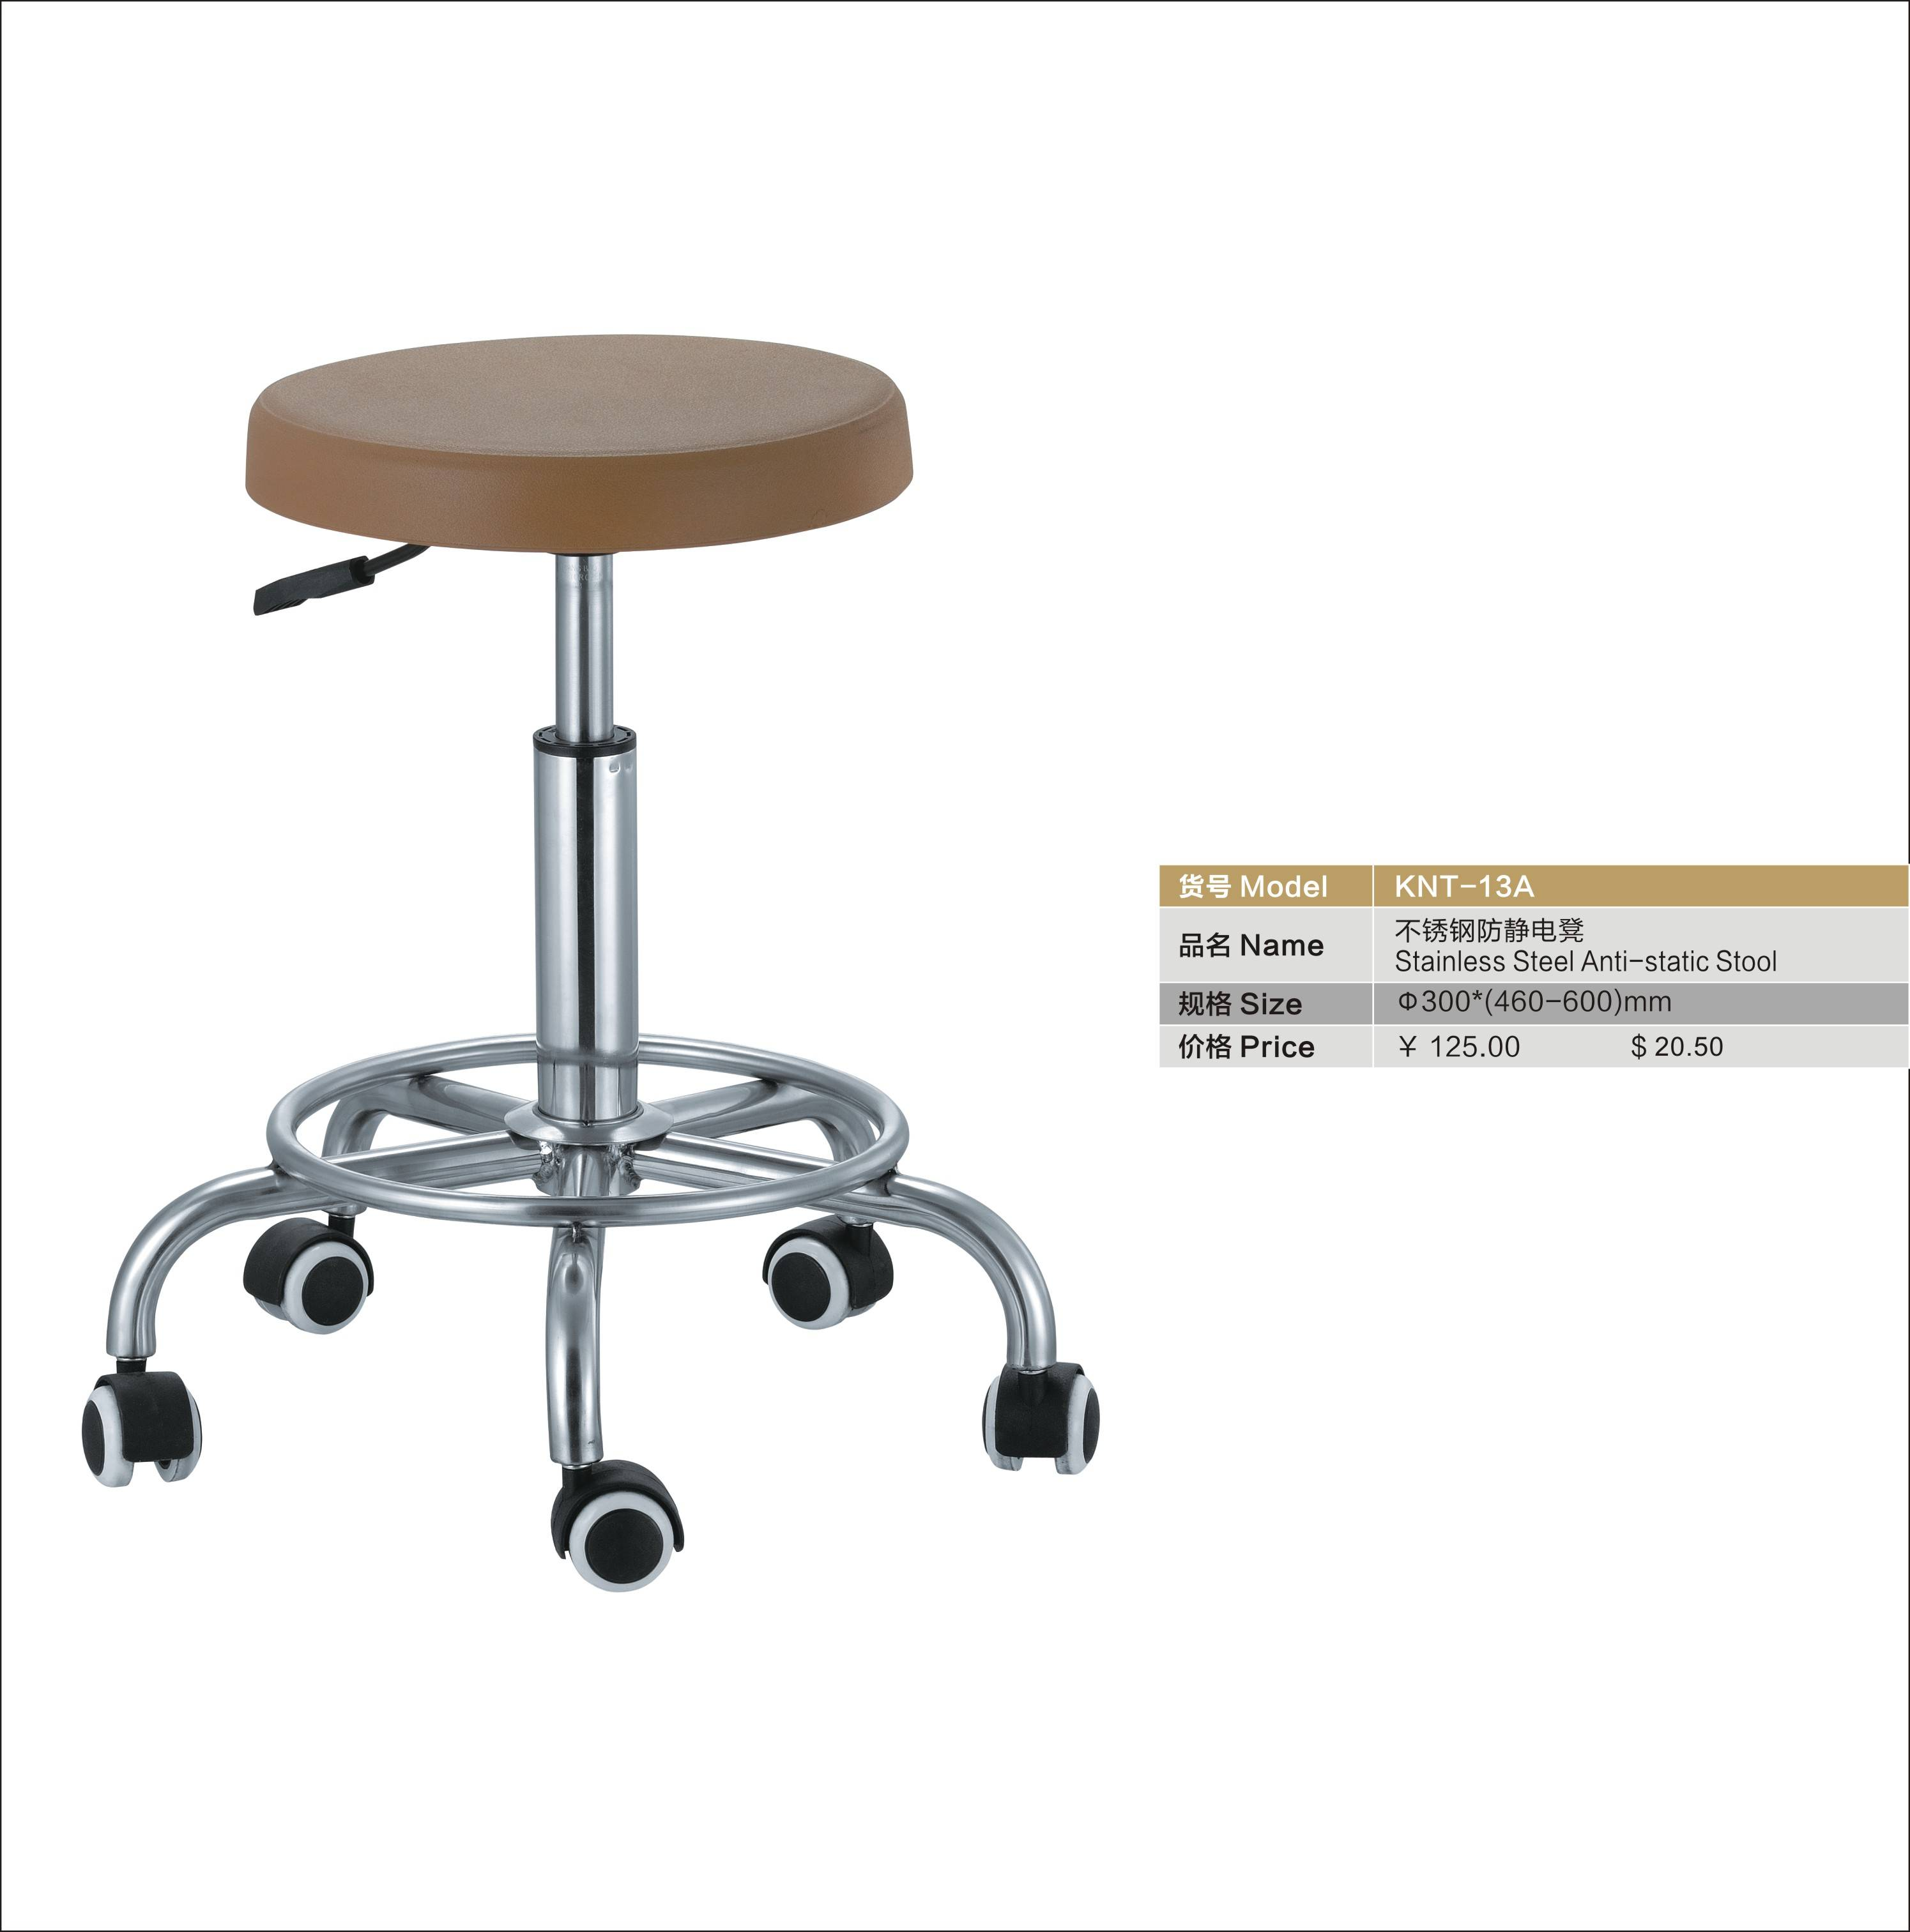 stainless steeel anti-static stool